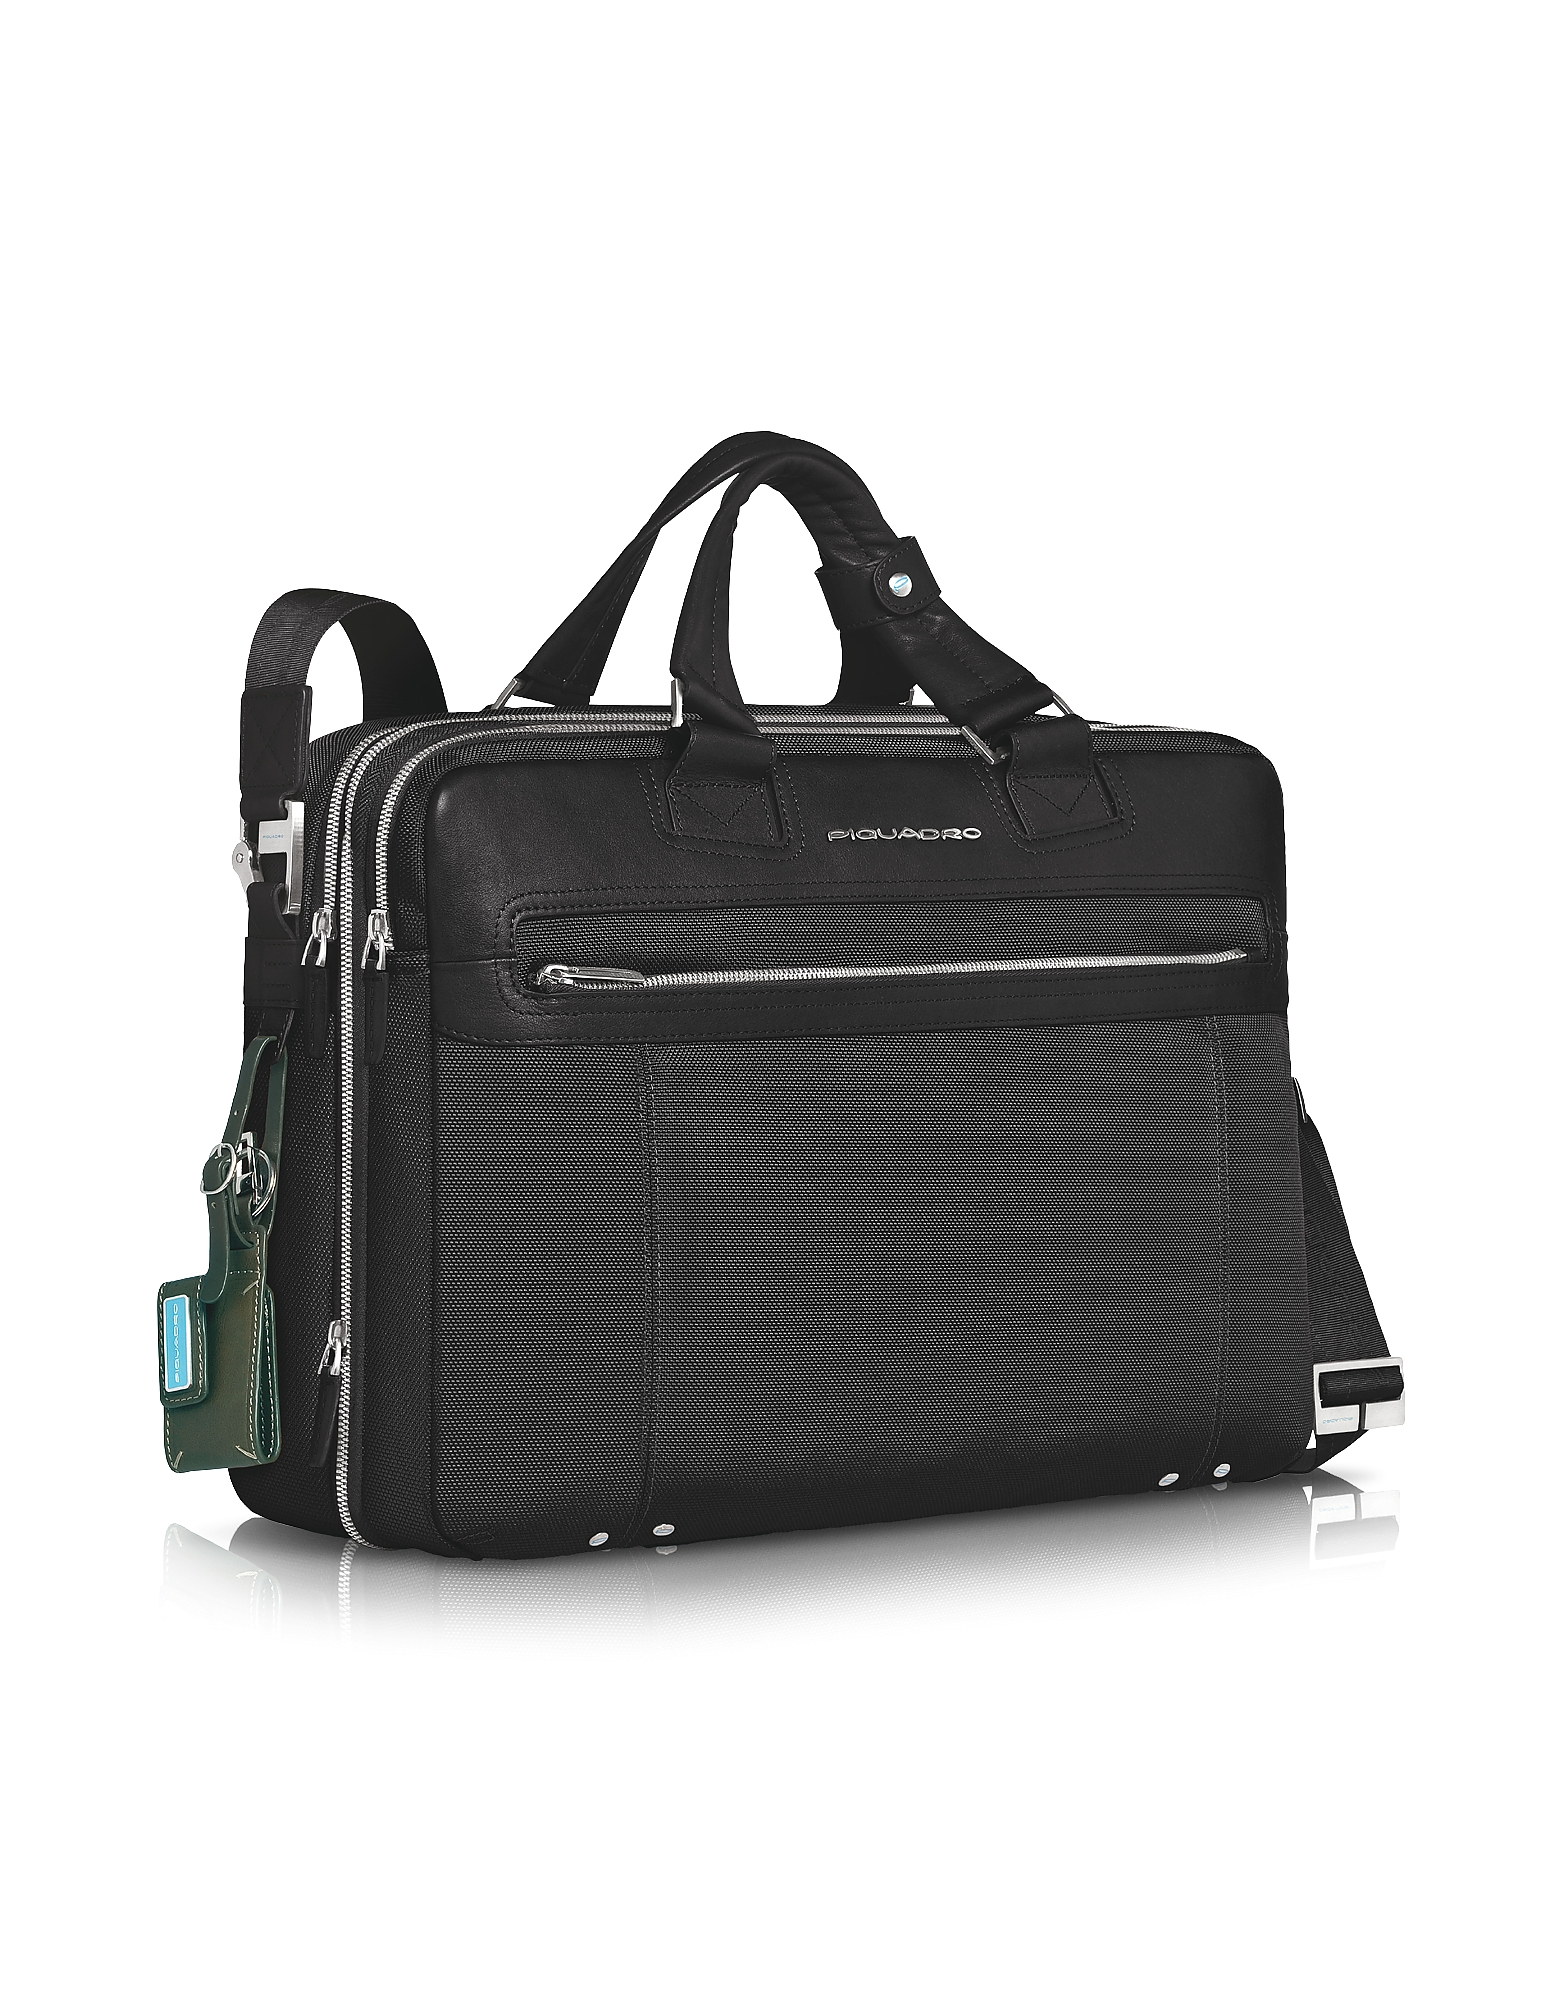 Piquadro Briefcases, Link - Double Handle 15